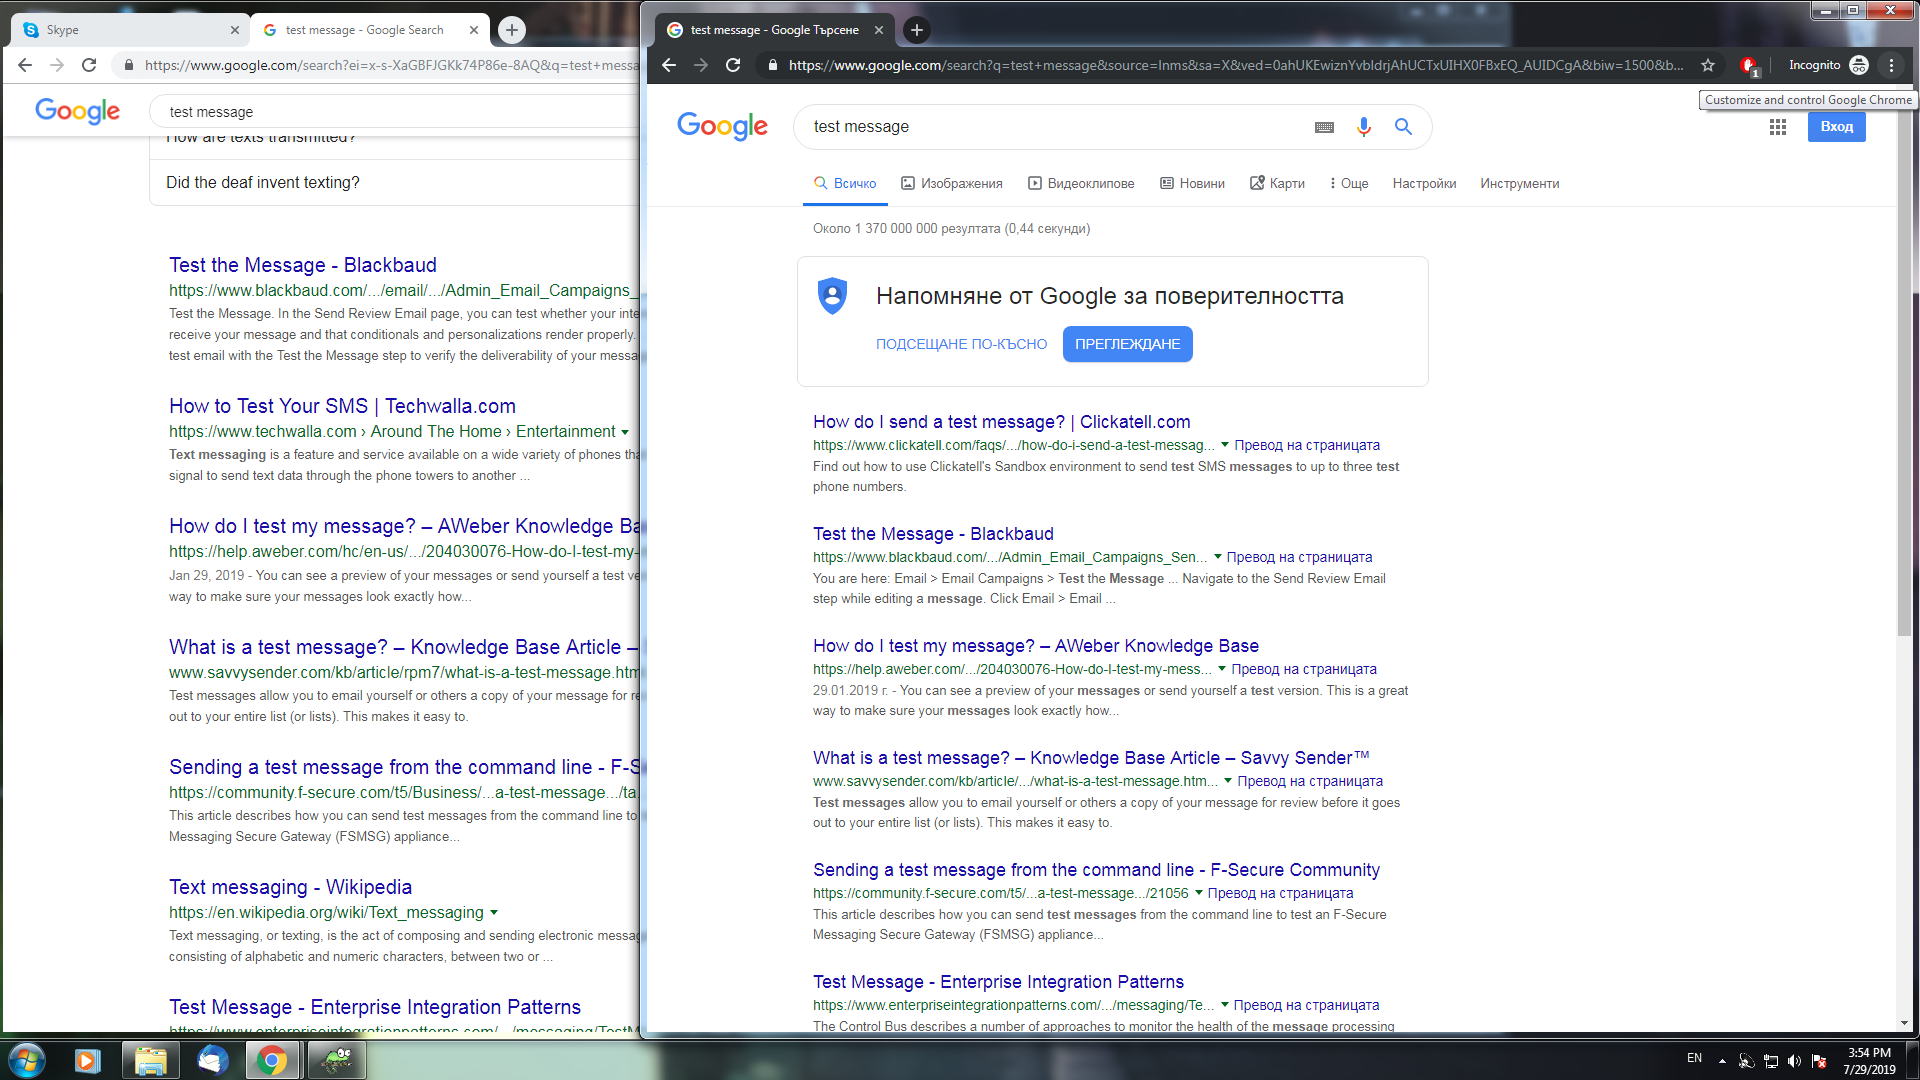 Problem with font size - Google Search Help